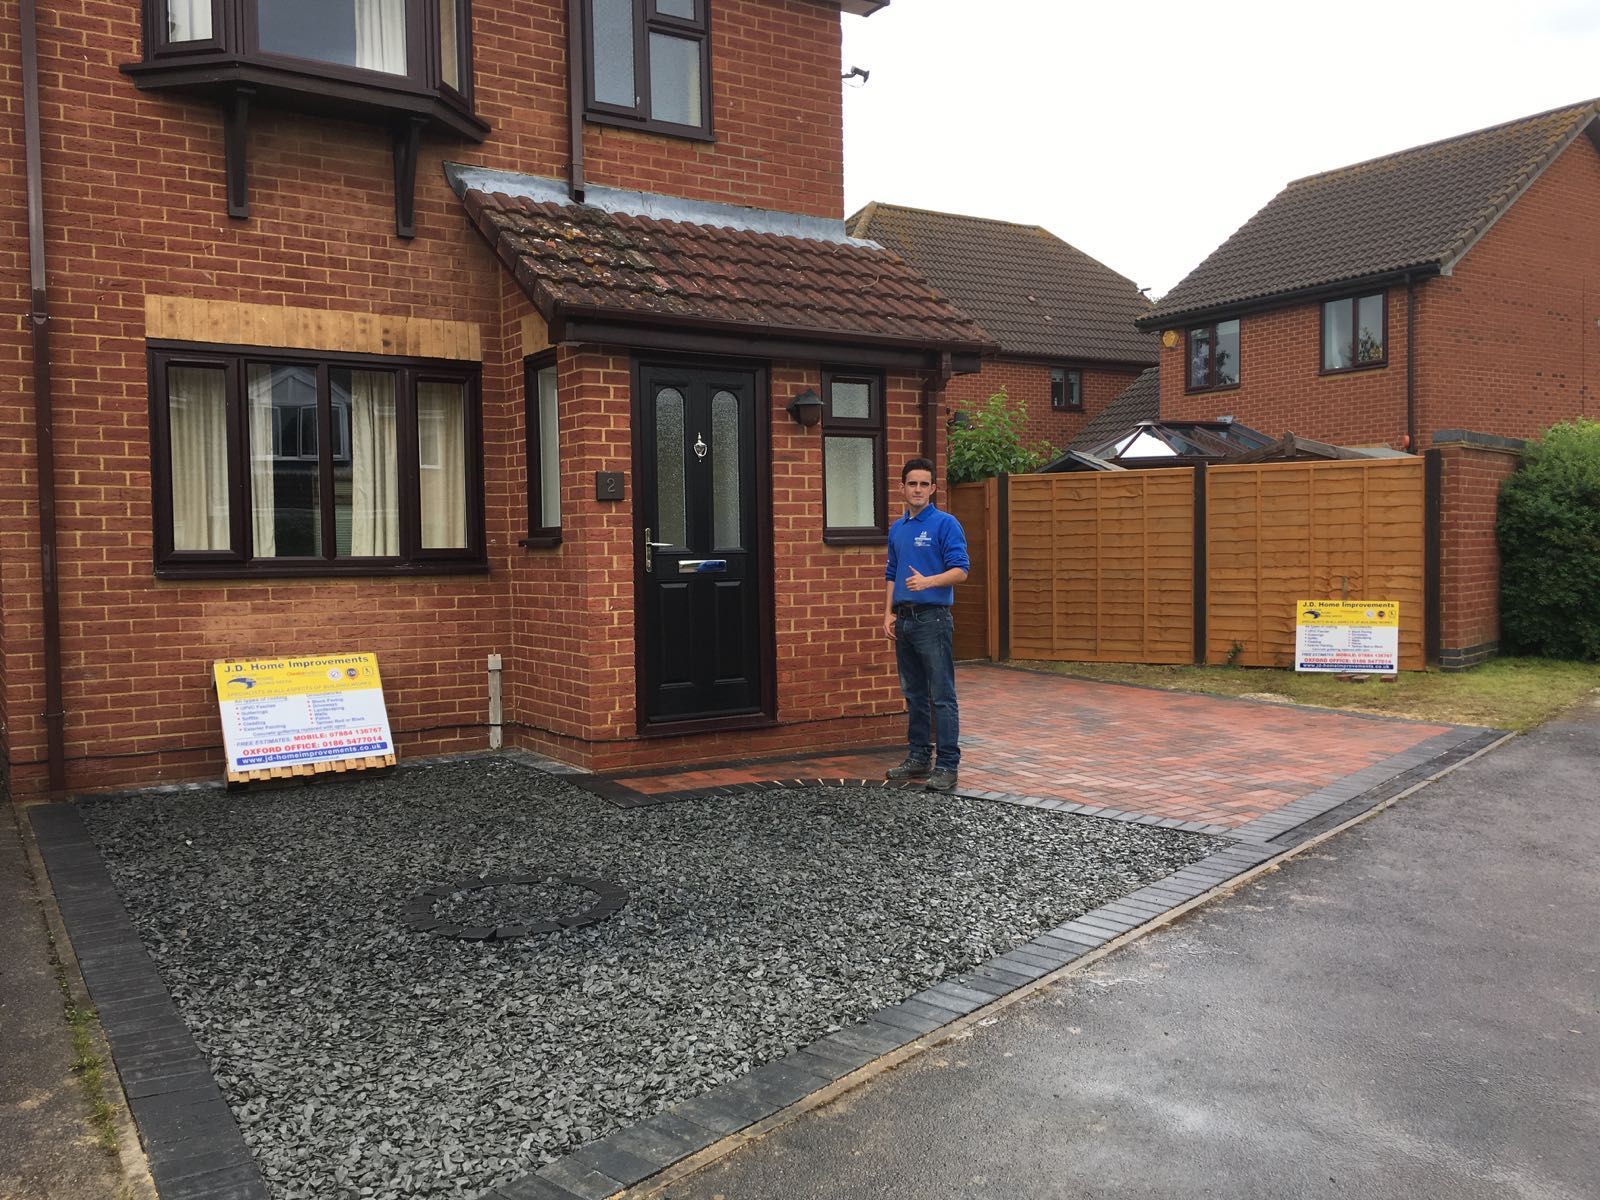 recent project for driveways in Clevedon - image shows a block paving driveway